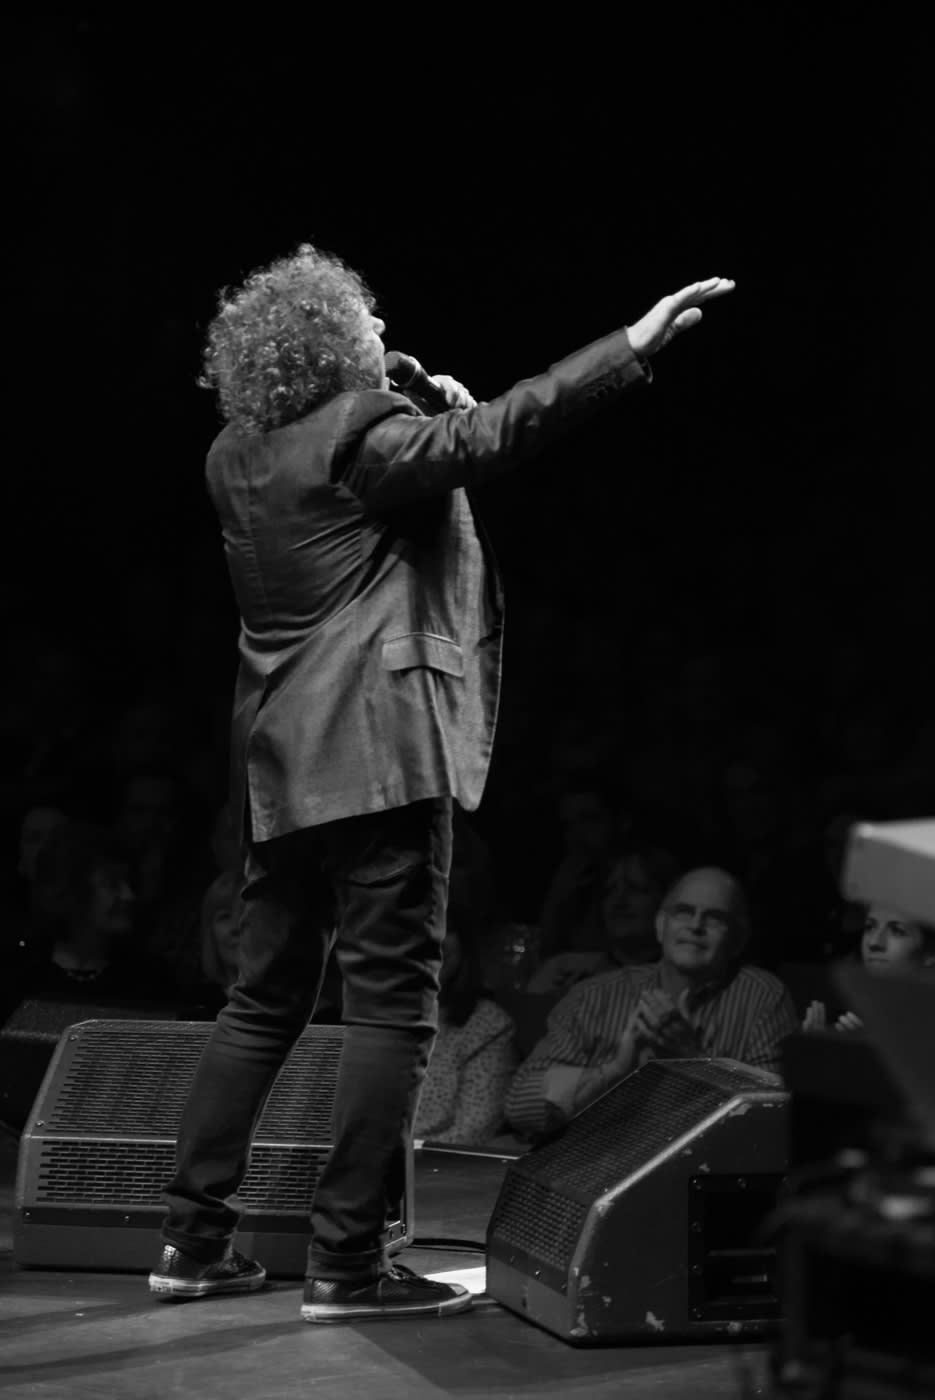 Leo Sayer at Bord Gais Energy Theatre by Sean Smyth (16-10-15) (86 of 129)